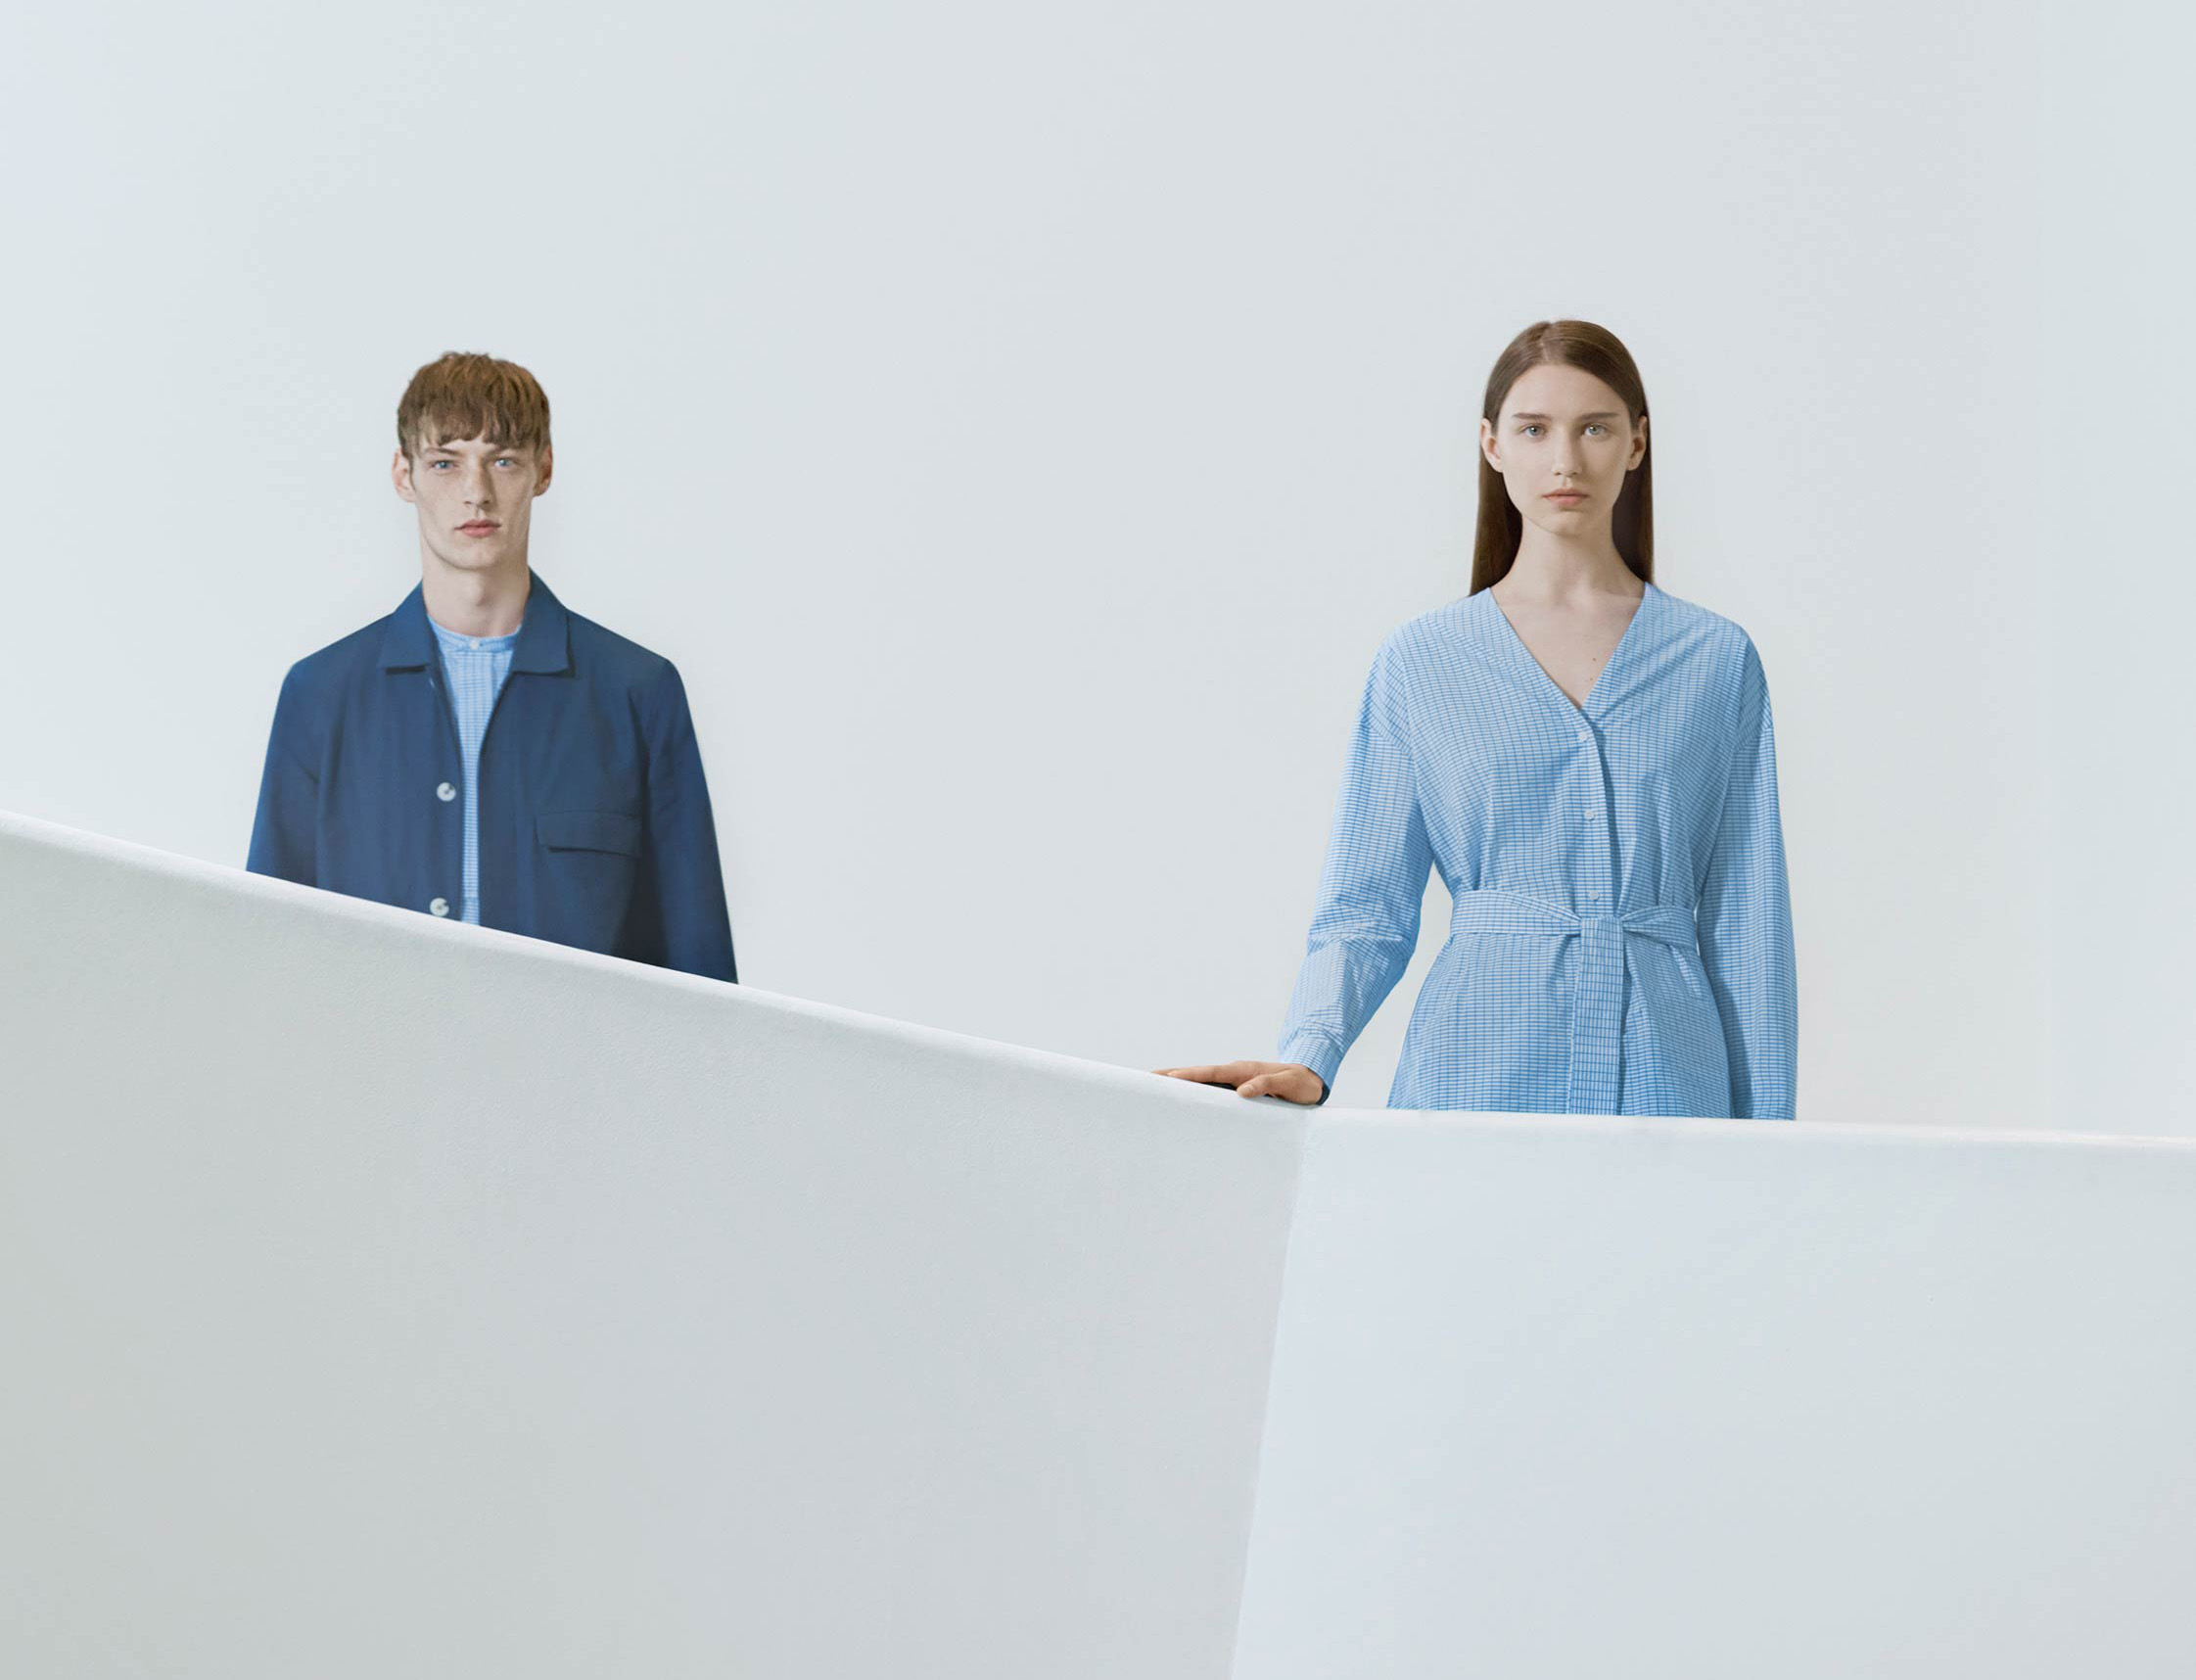 cos-x-agnes-martin-collection